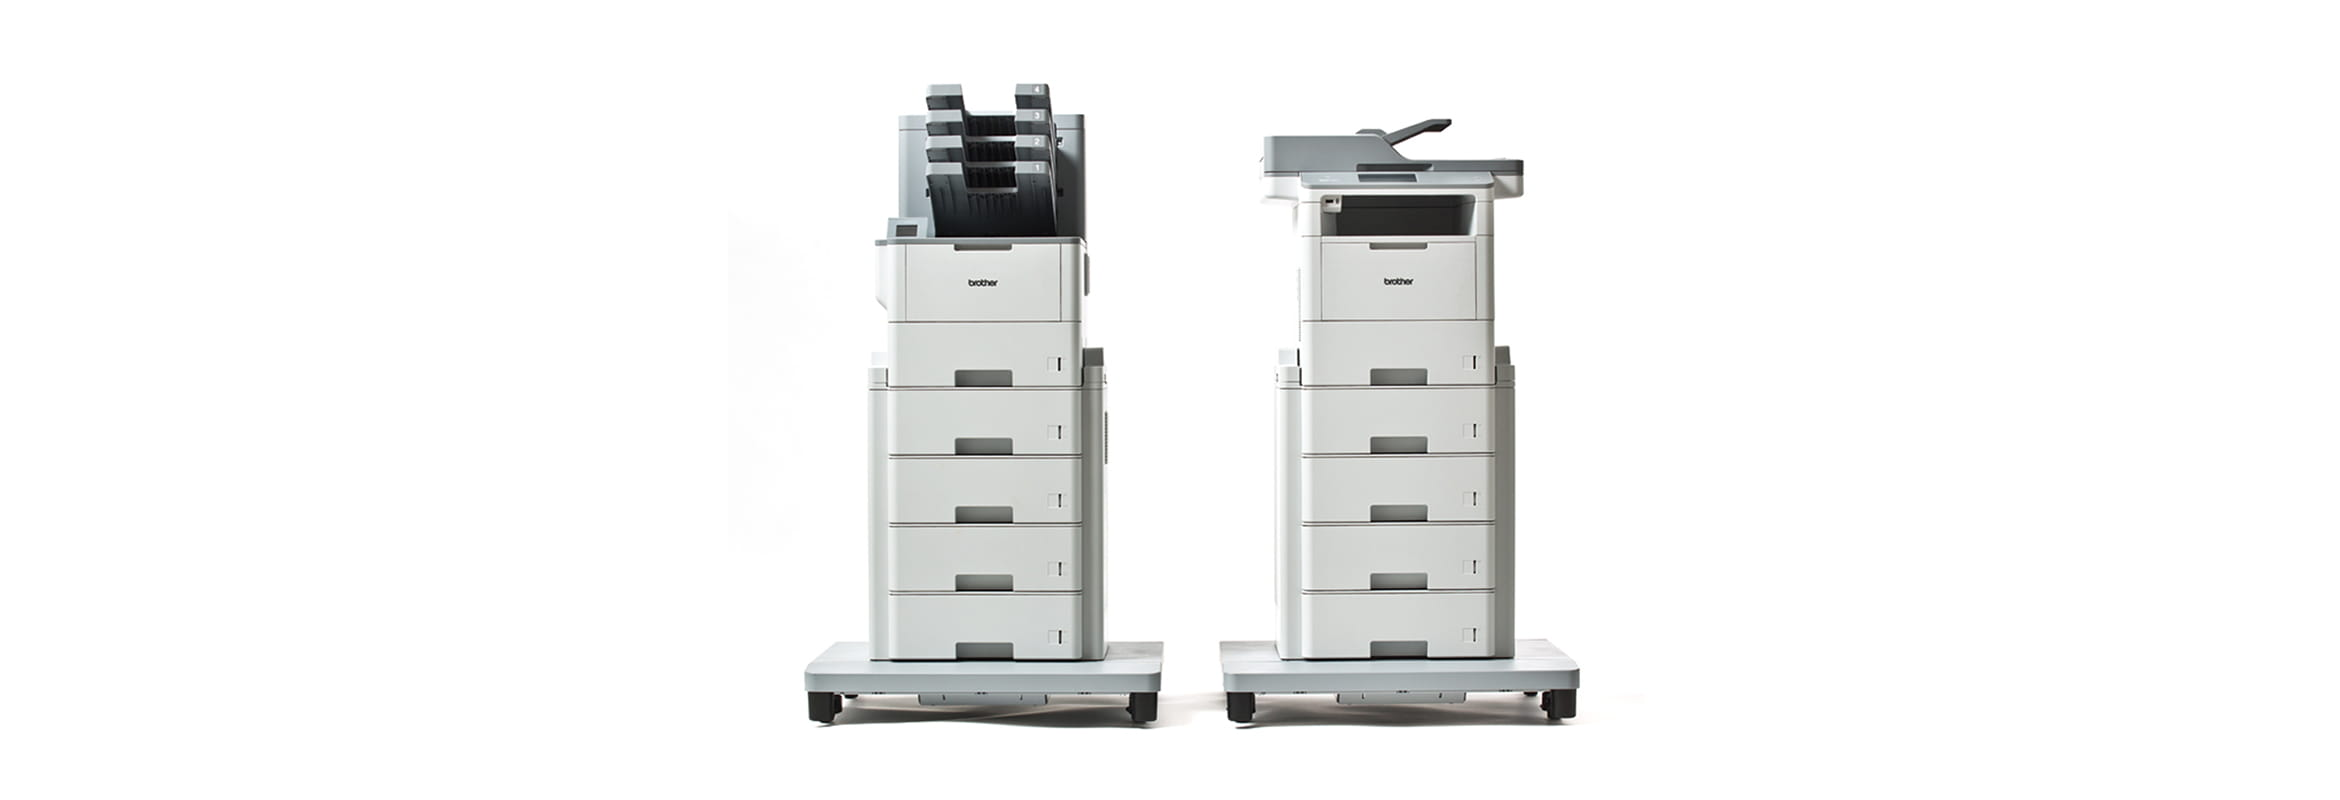 L6000 workgroup range printers Brother